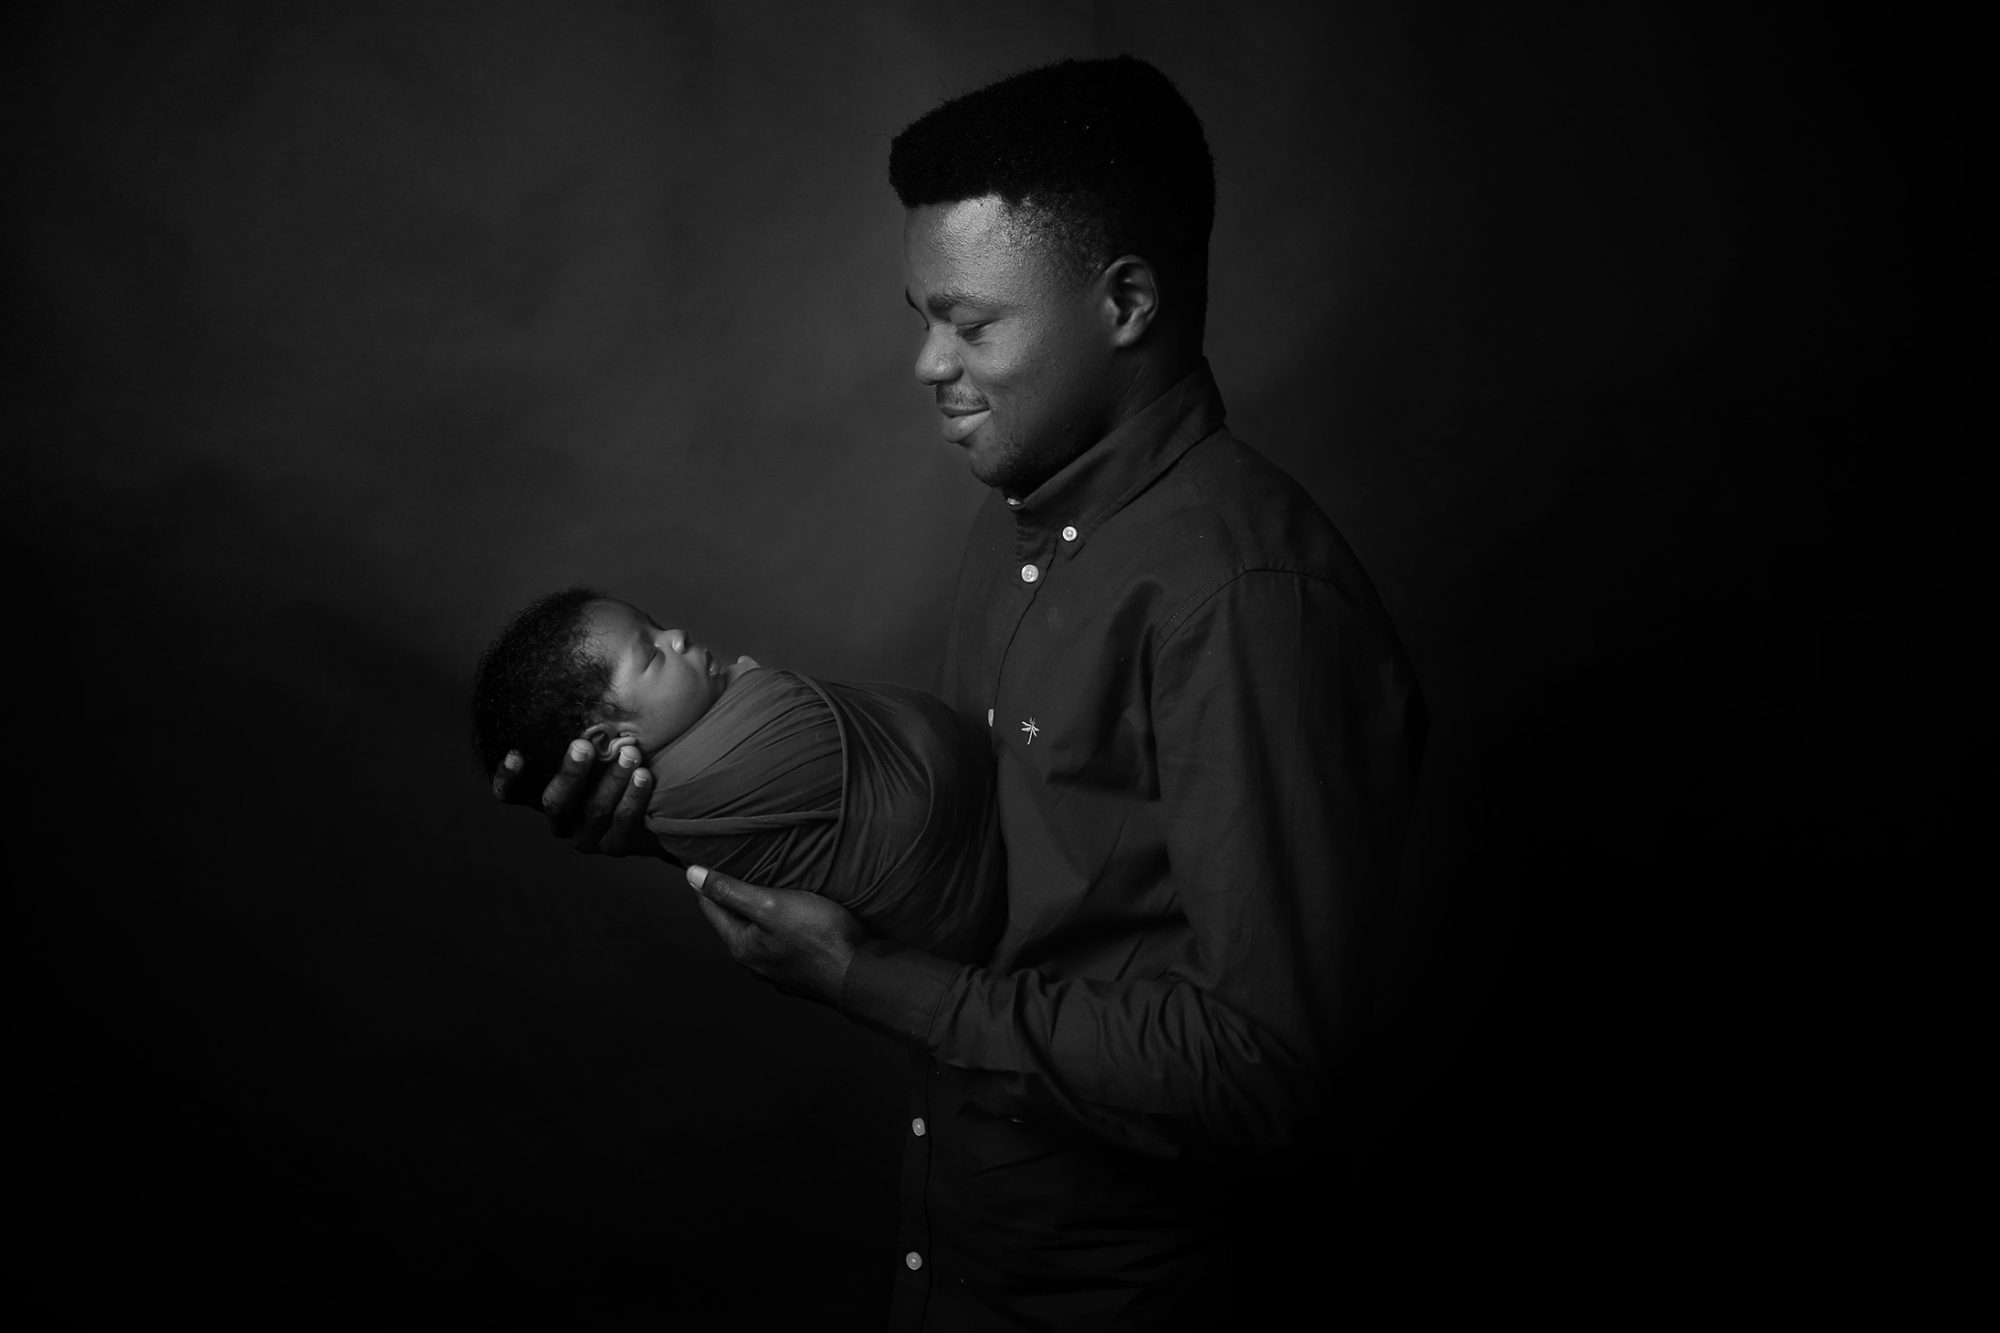 a nigerian father looking at a newborn baby boy while holding him in front of him